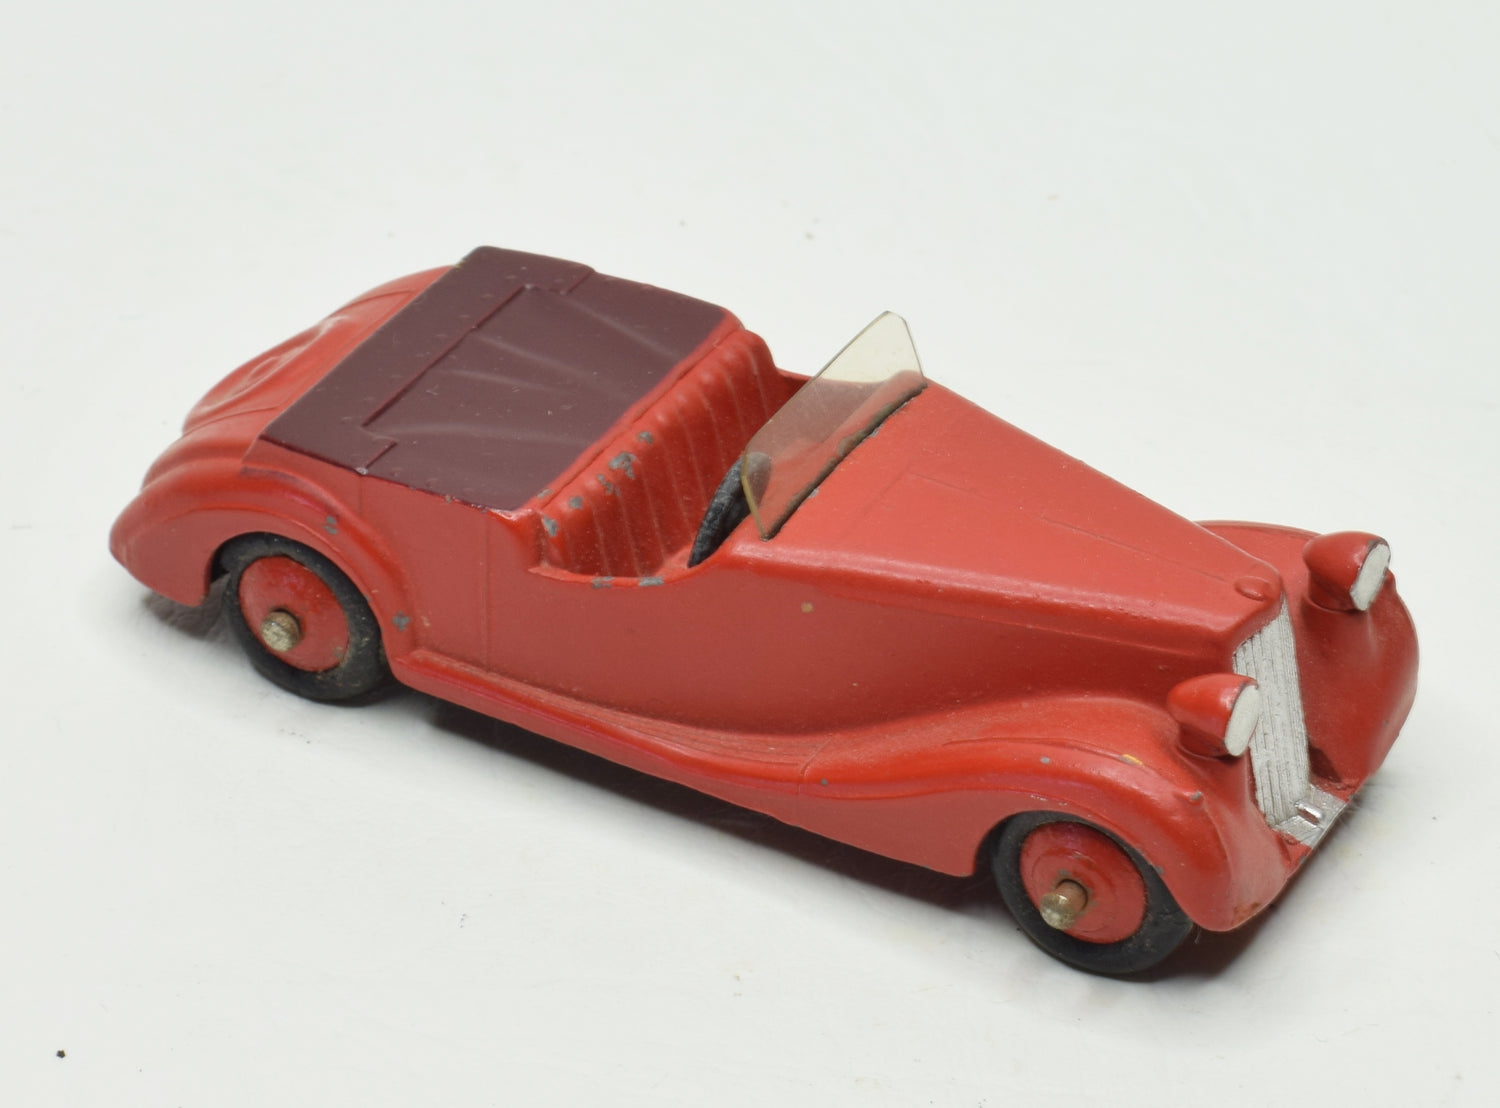 Dinky Toys 38b Sunbeam-Talbot Very Near Mint Brecon' Collection Part 2 (matte red)